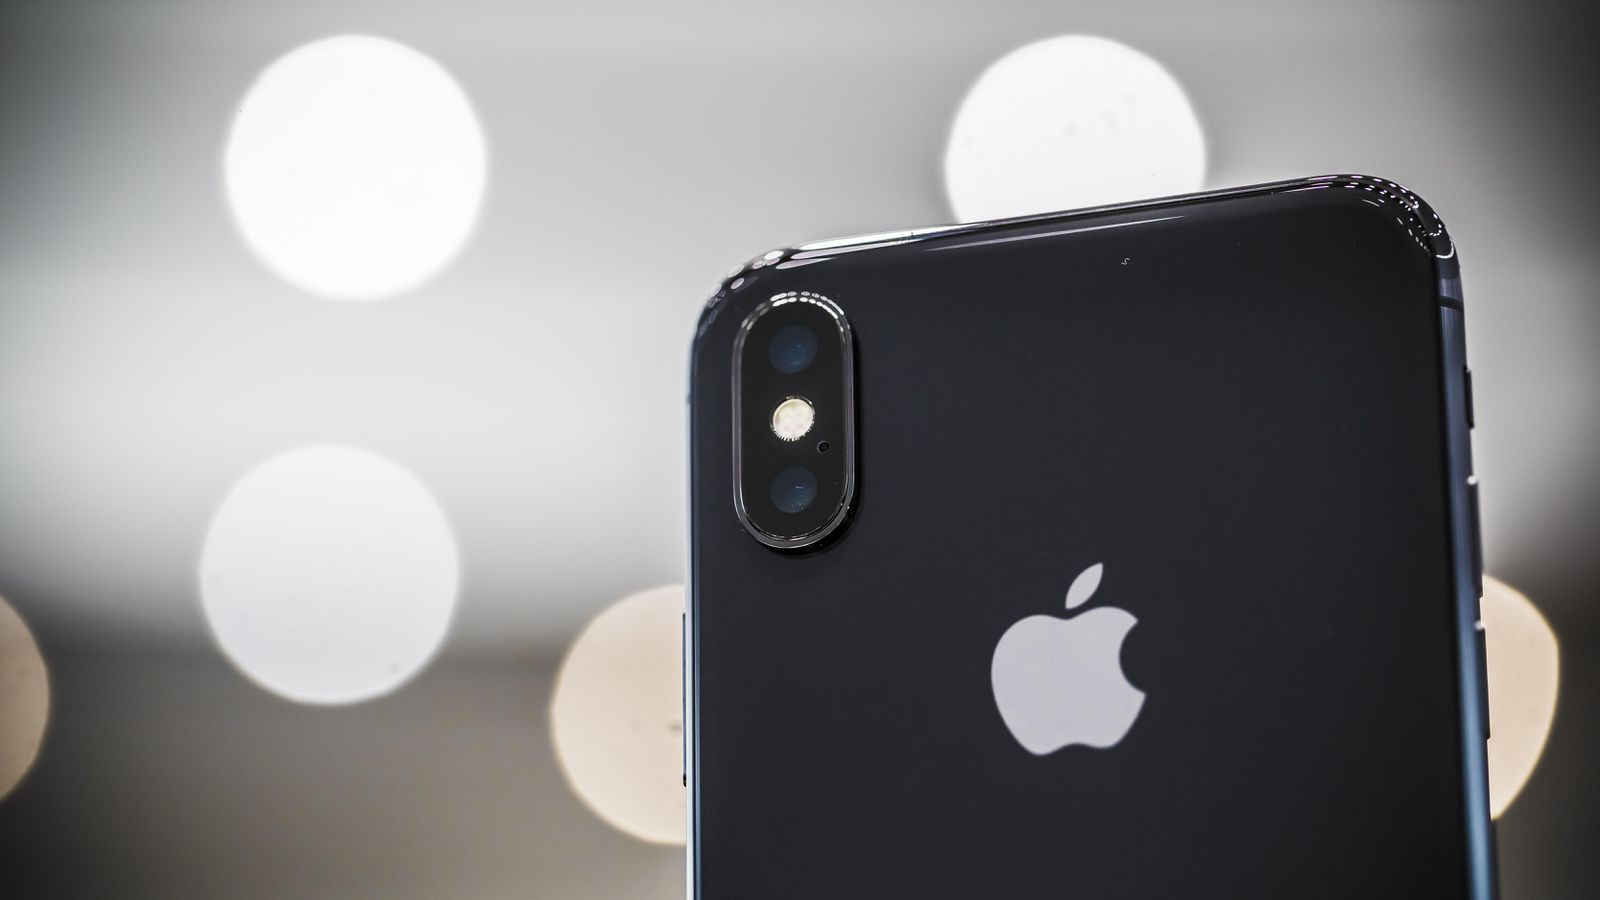 Apple is looking to include a 3D sensor in 2019 iPhone